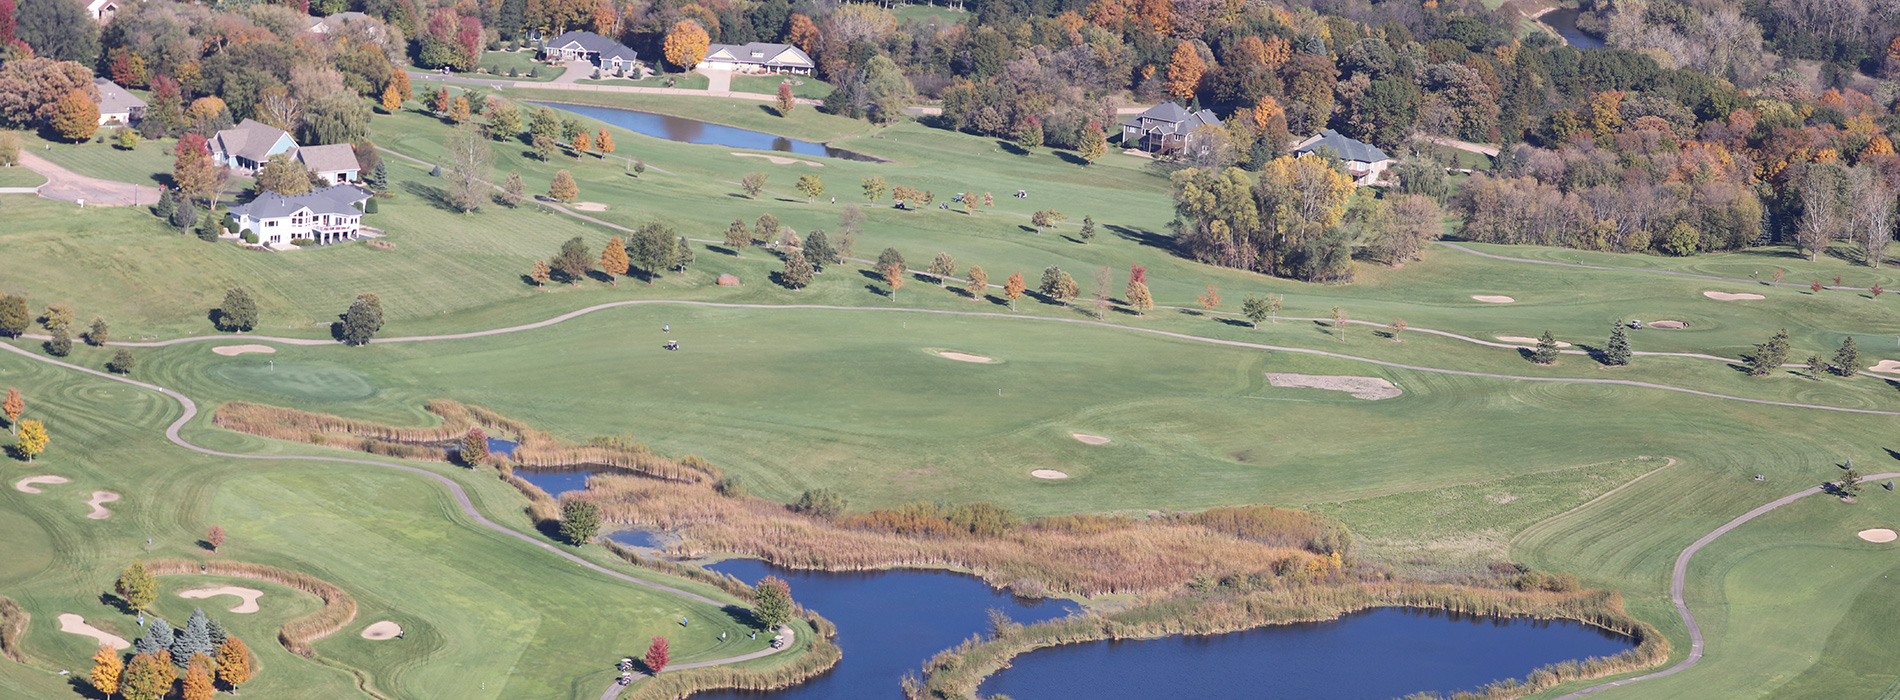 Minnesota's Premier Public Golf Course